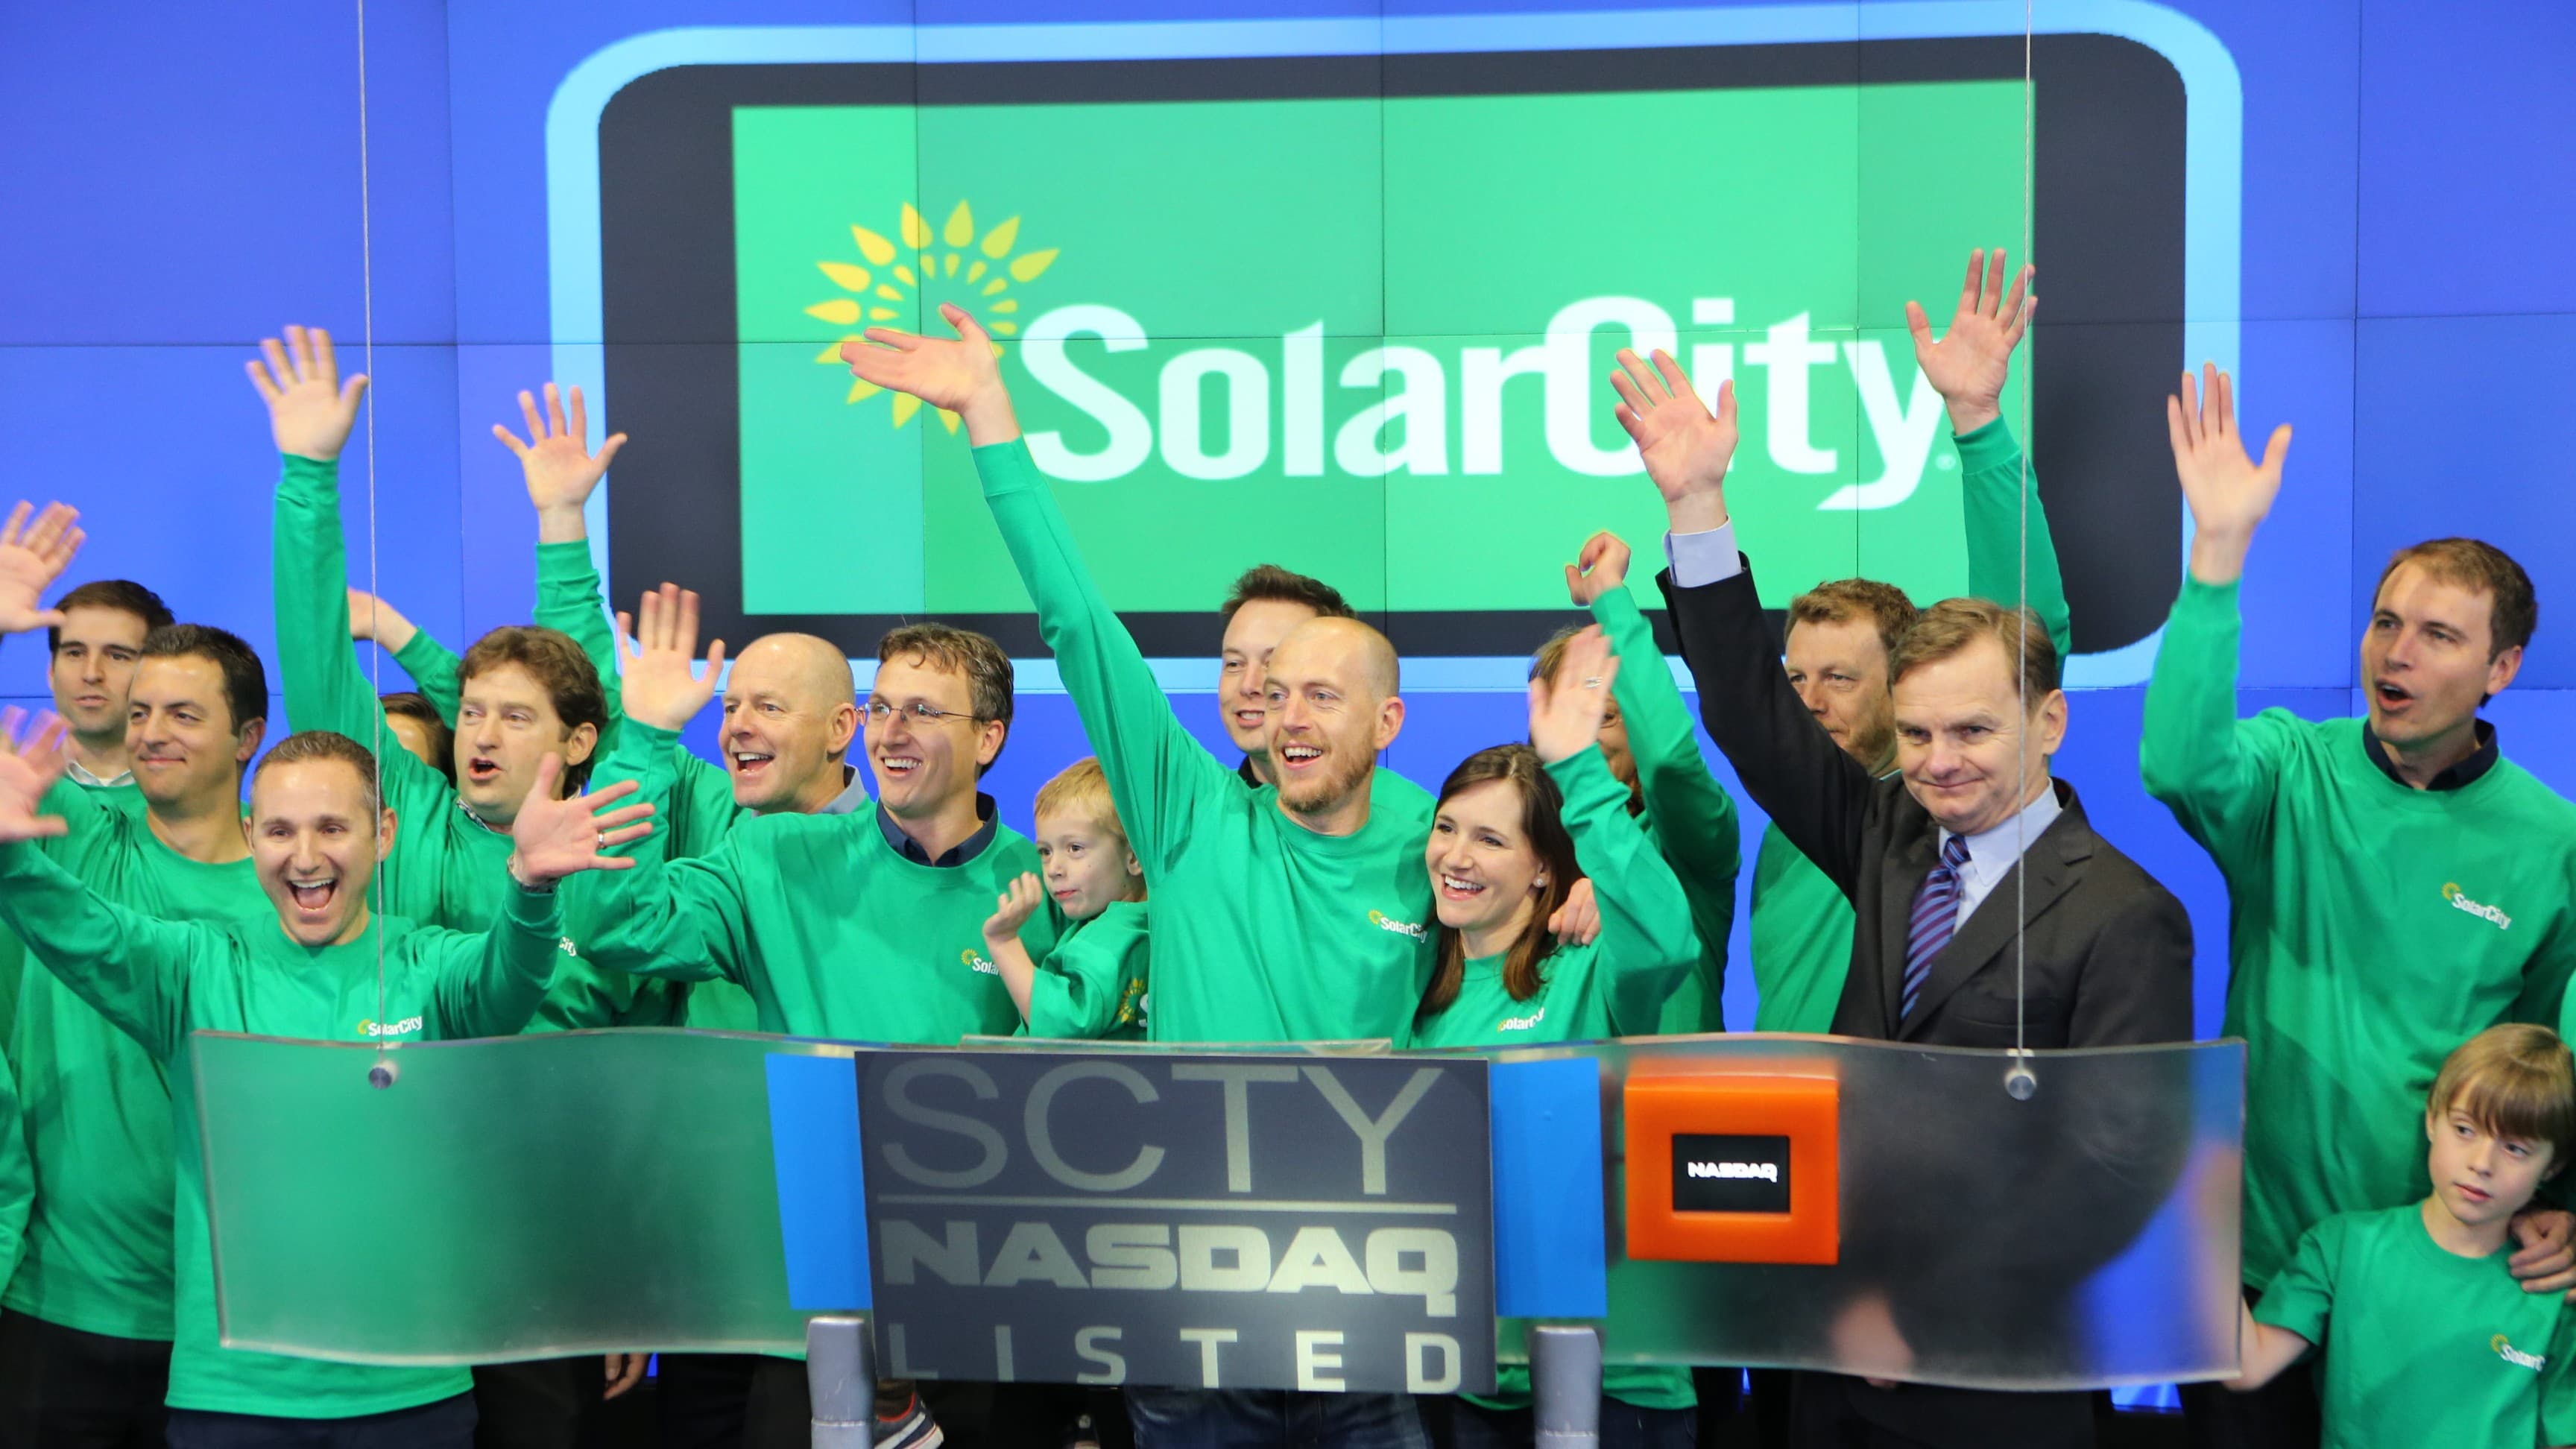 SolarCity wants to build one of world's largest and most advanced solar plants in the state of New York